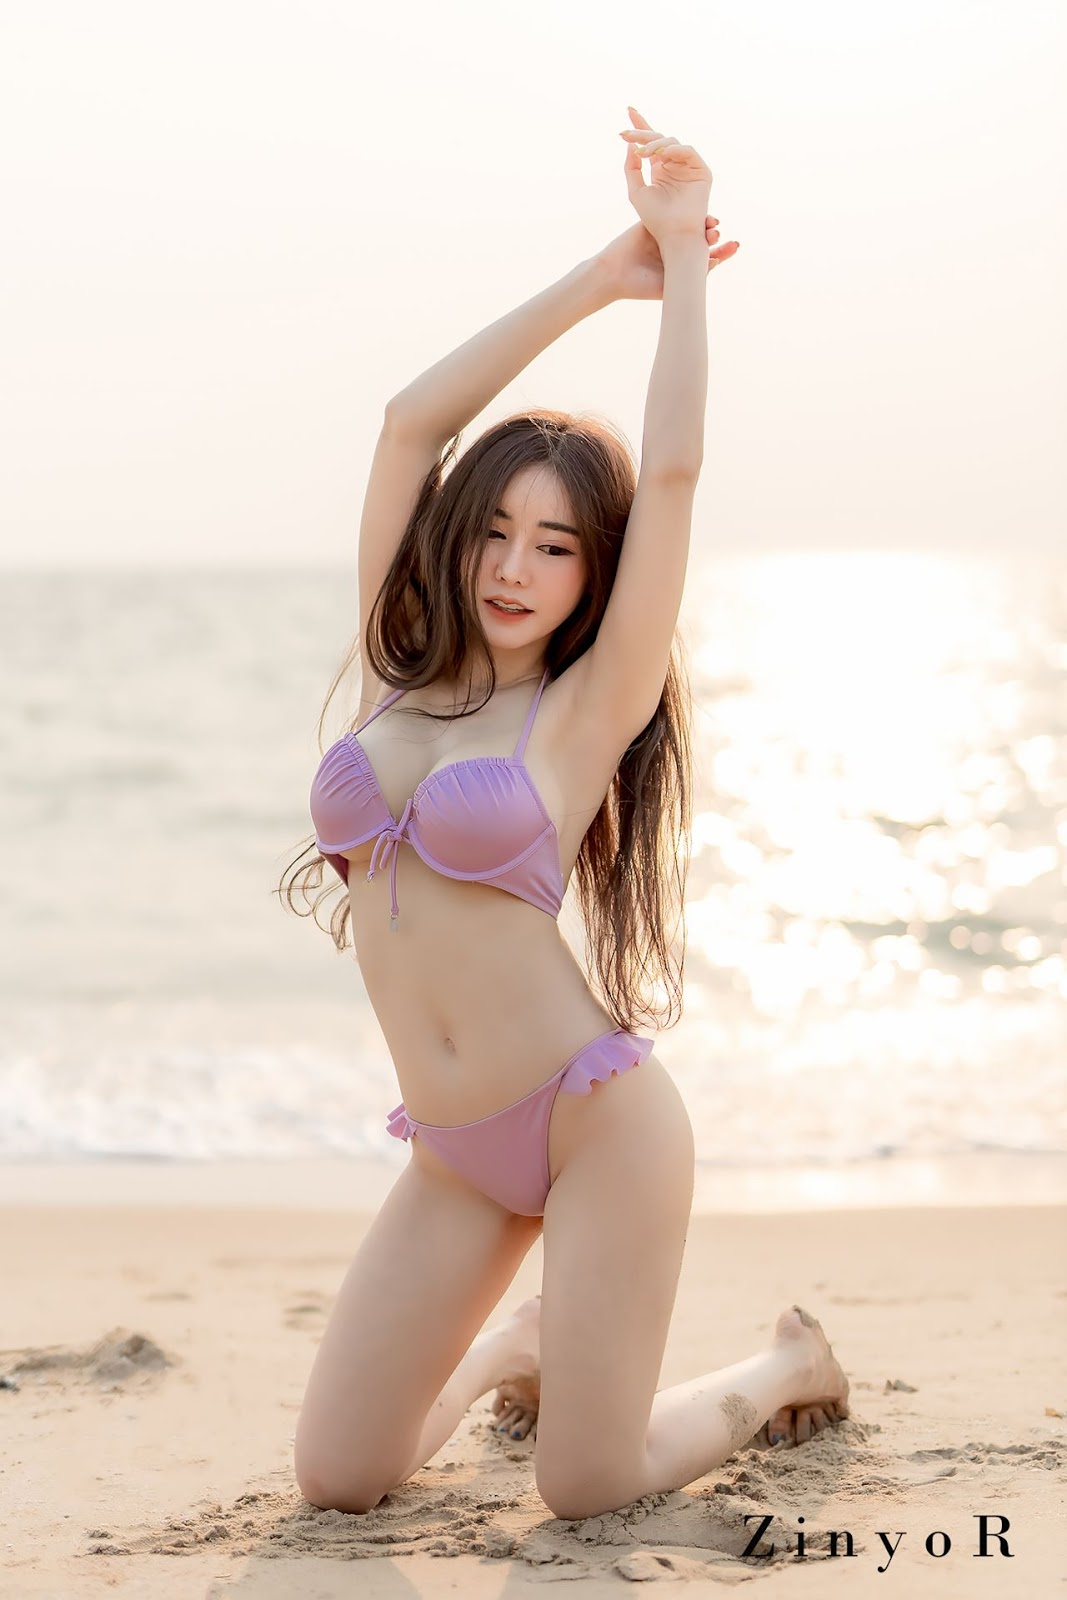 Image-Thailand-Sexy-Model-Blue-Jirarat-จิรารัตน์-ชานันโท-Blue-On-The-Beach-TruePic.net- Picture-2